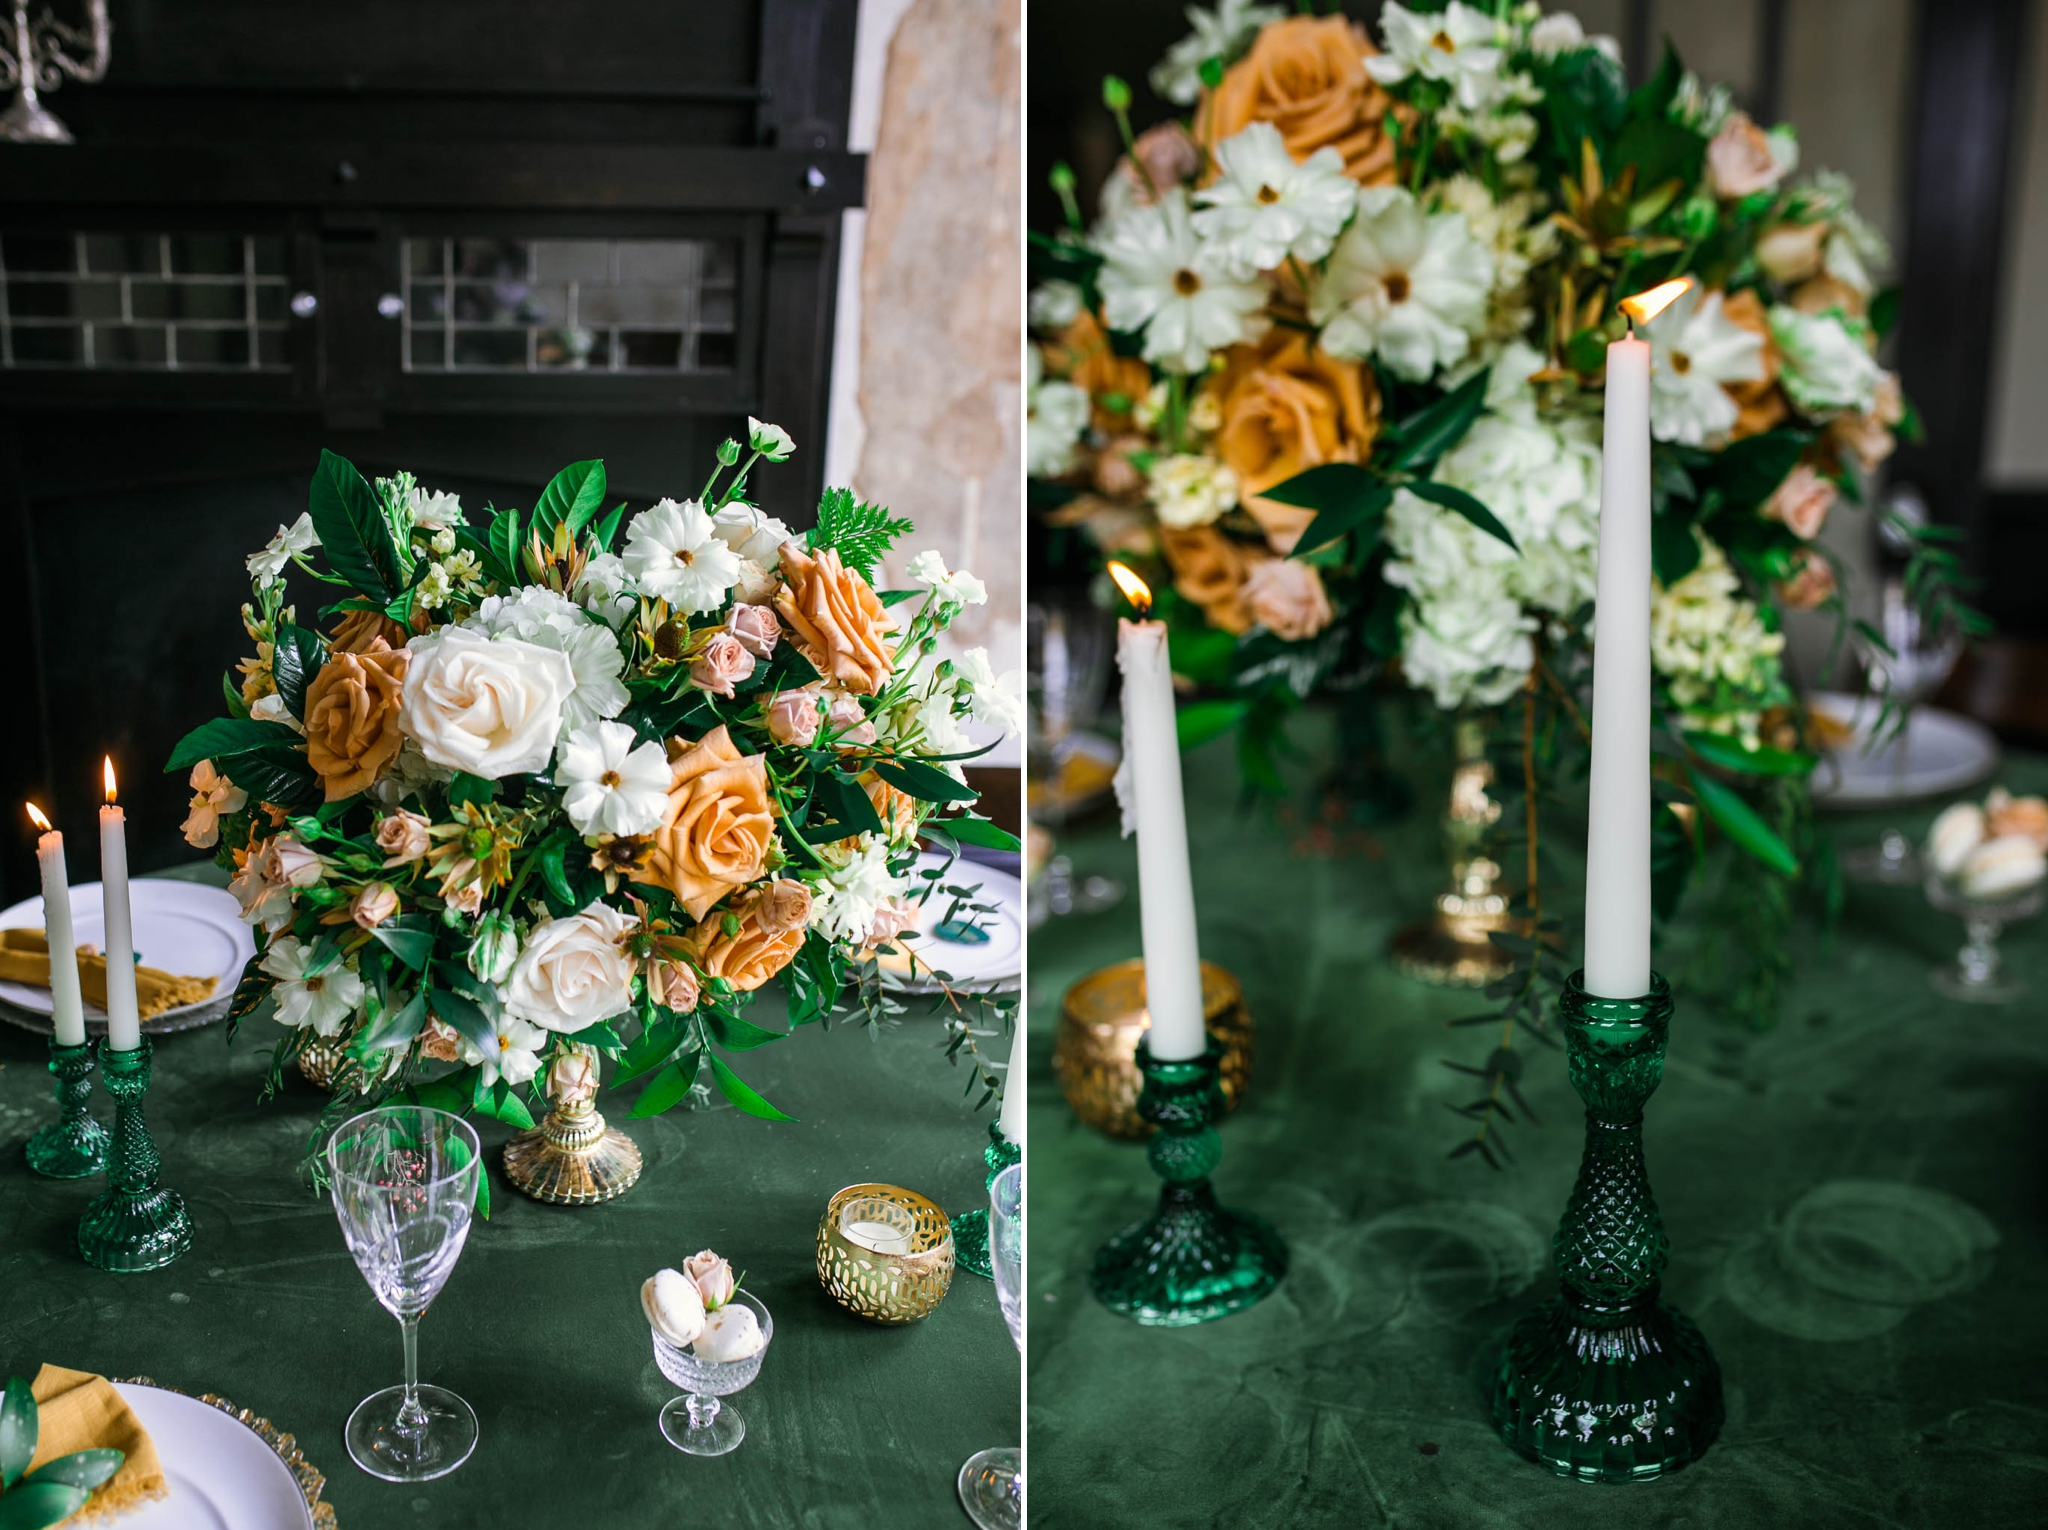 Close up of the Center piece for a Emerald inspired Wedding - green table cloth with gold candle sticks and a big Flowers as a centerpiece